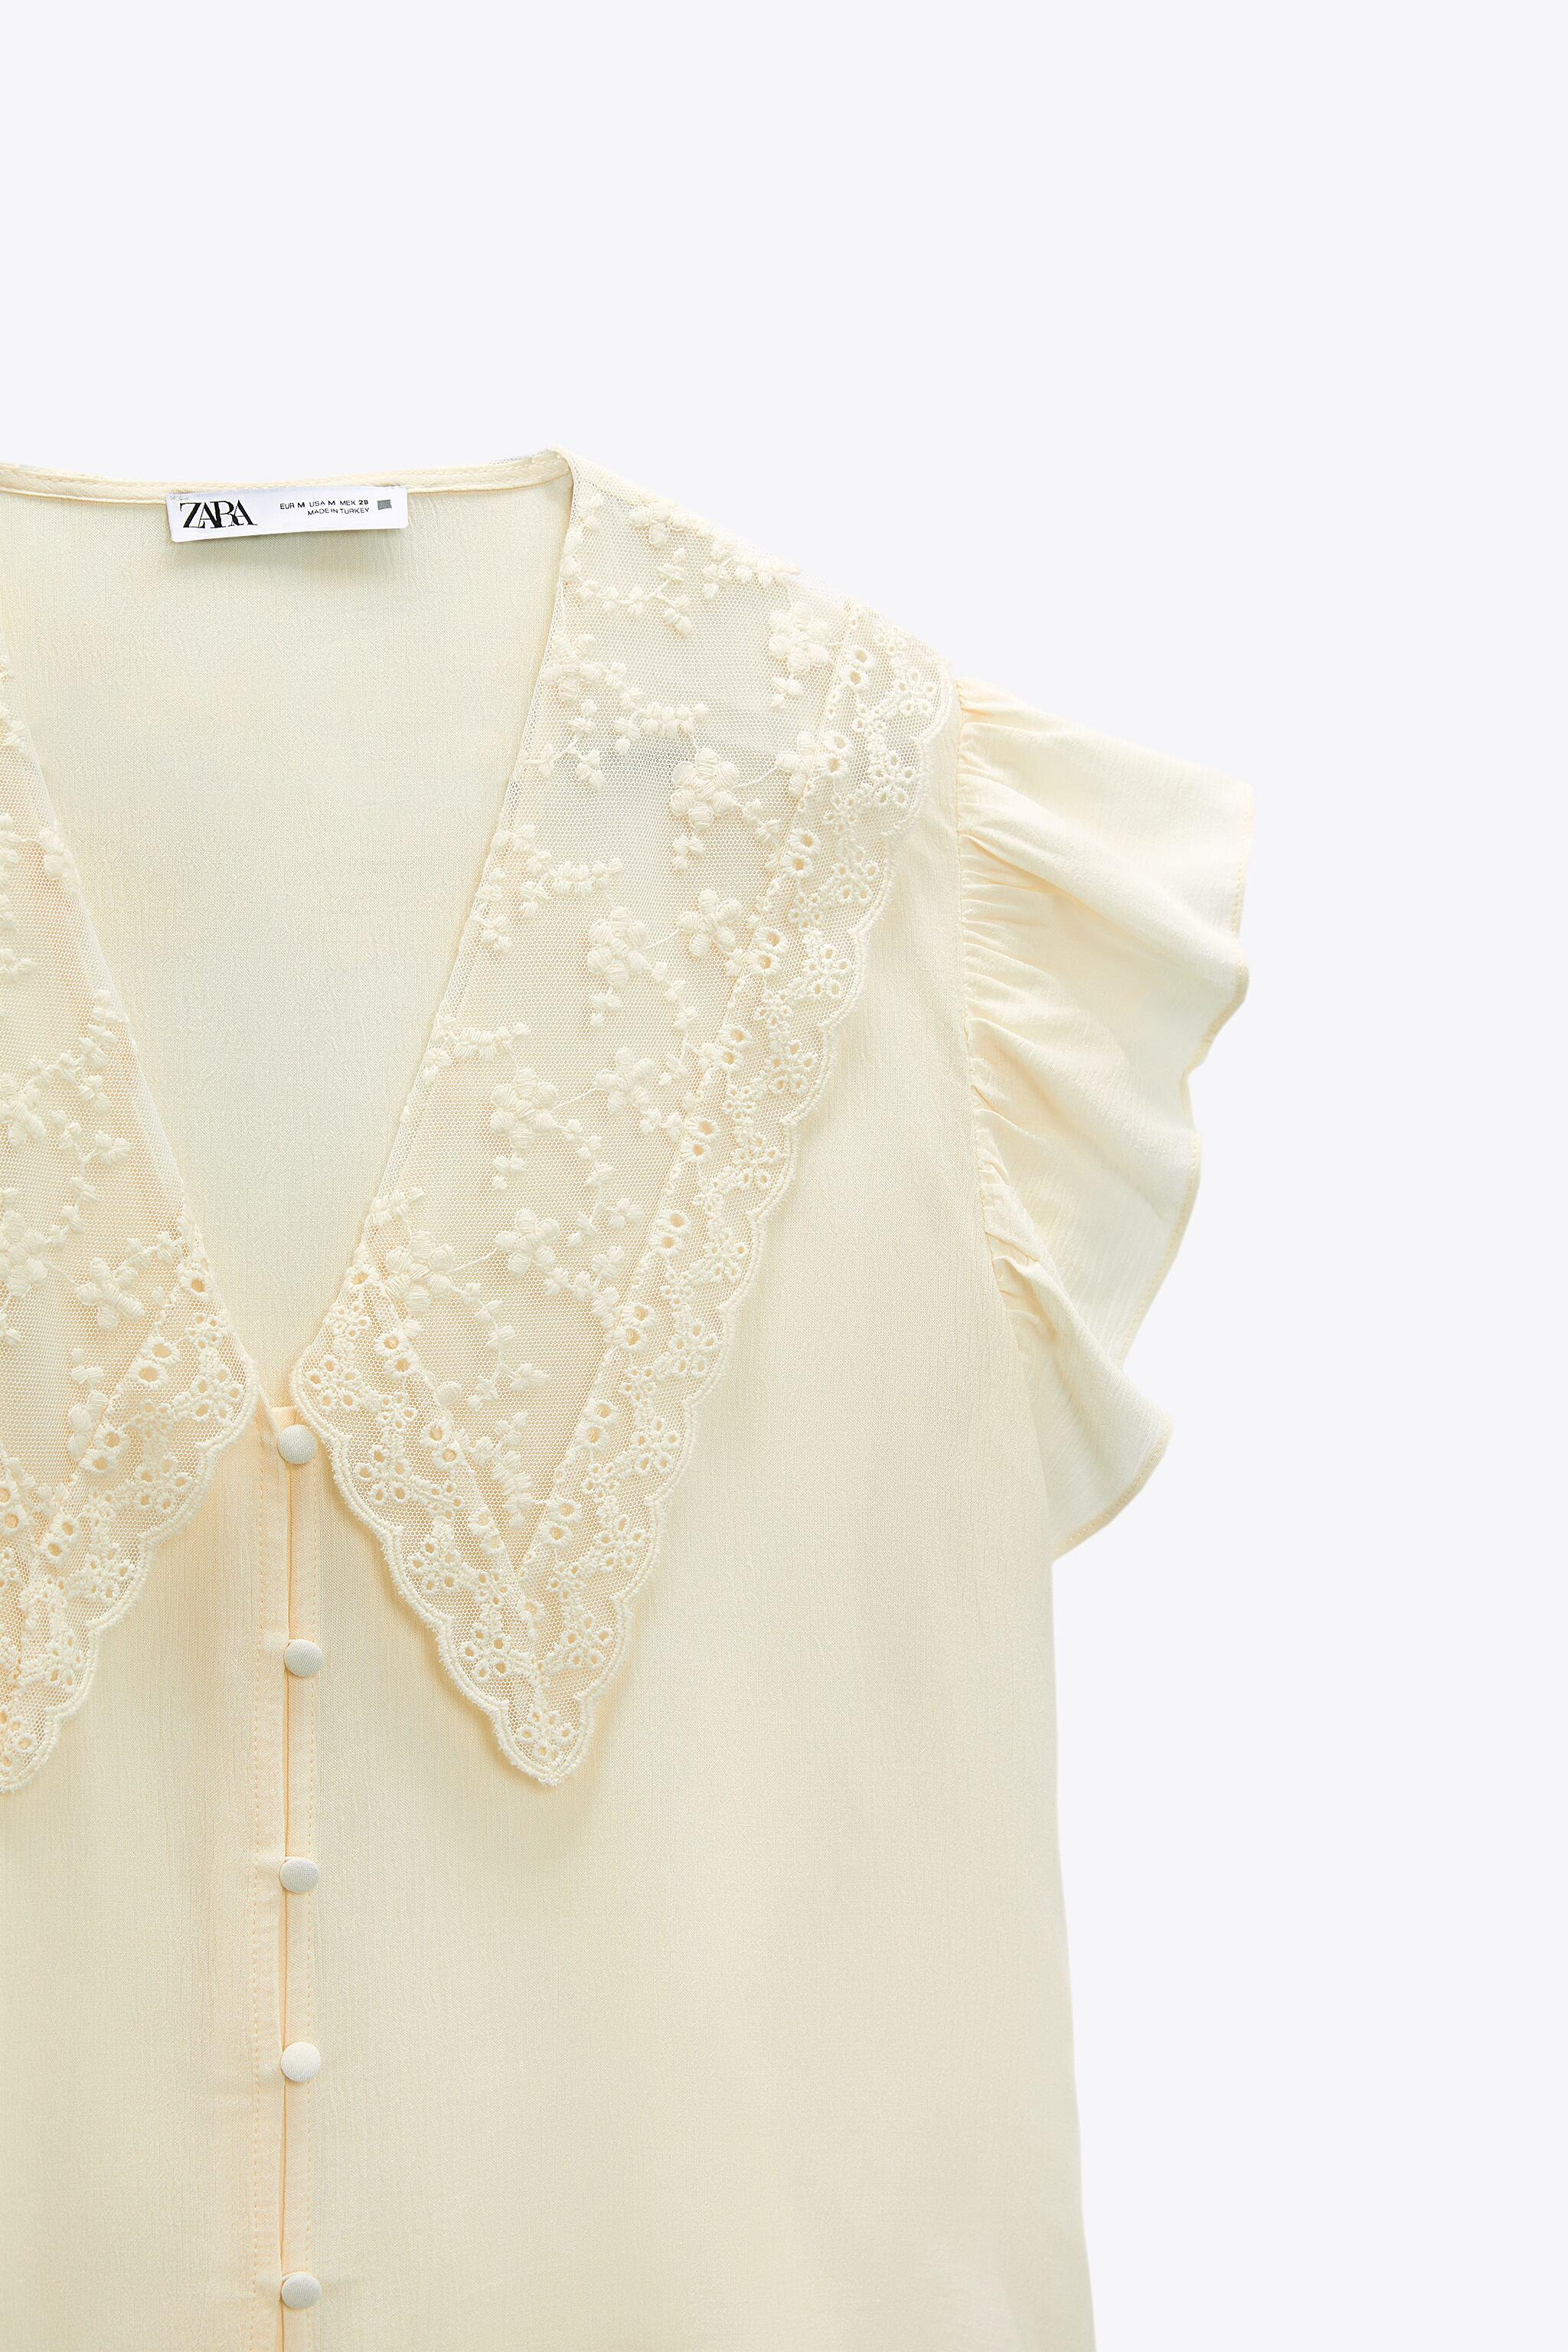 EMBROIDERED LAPEL BLOUSE 7